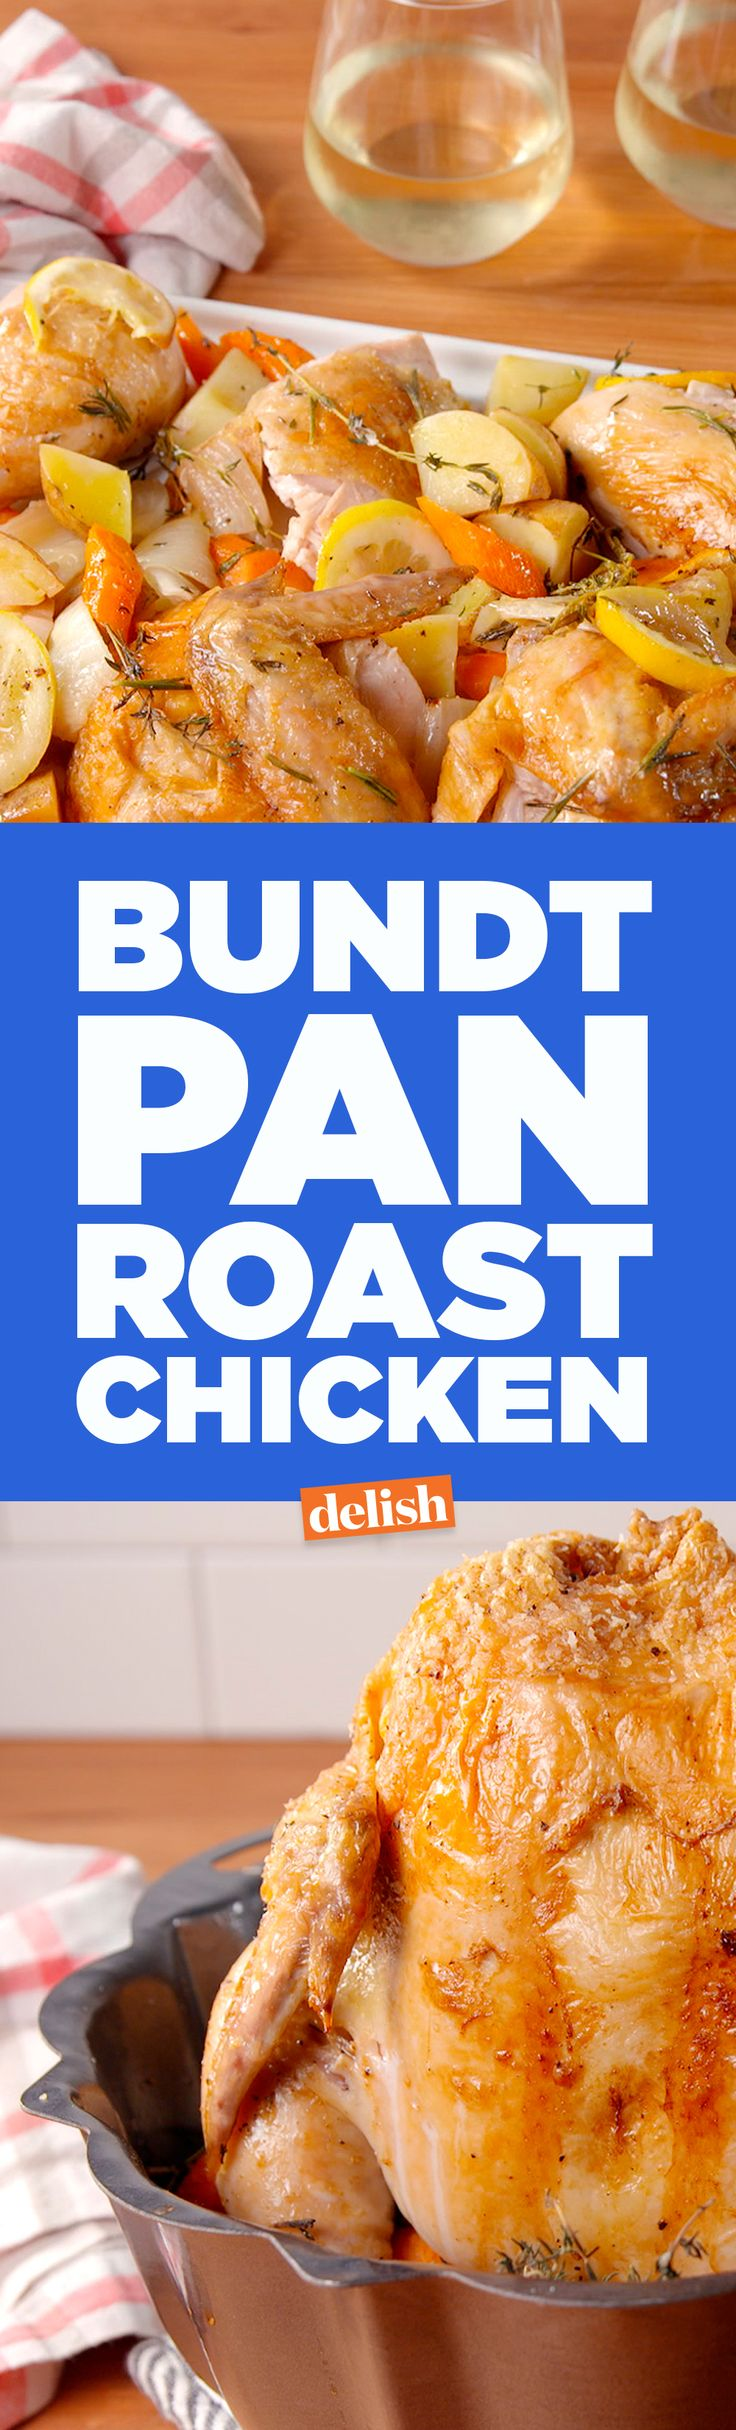 This Bundt Pan Roast Chicken is the most important cooking hack of all time. Get the recipe on Delish.com.